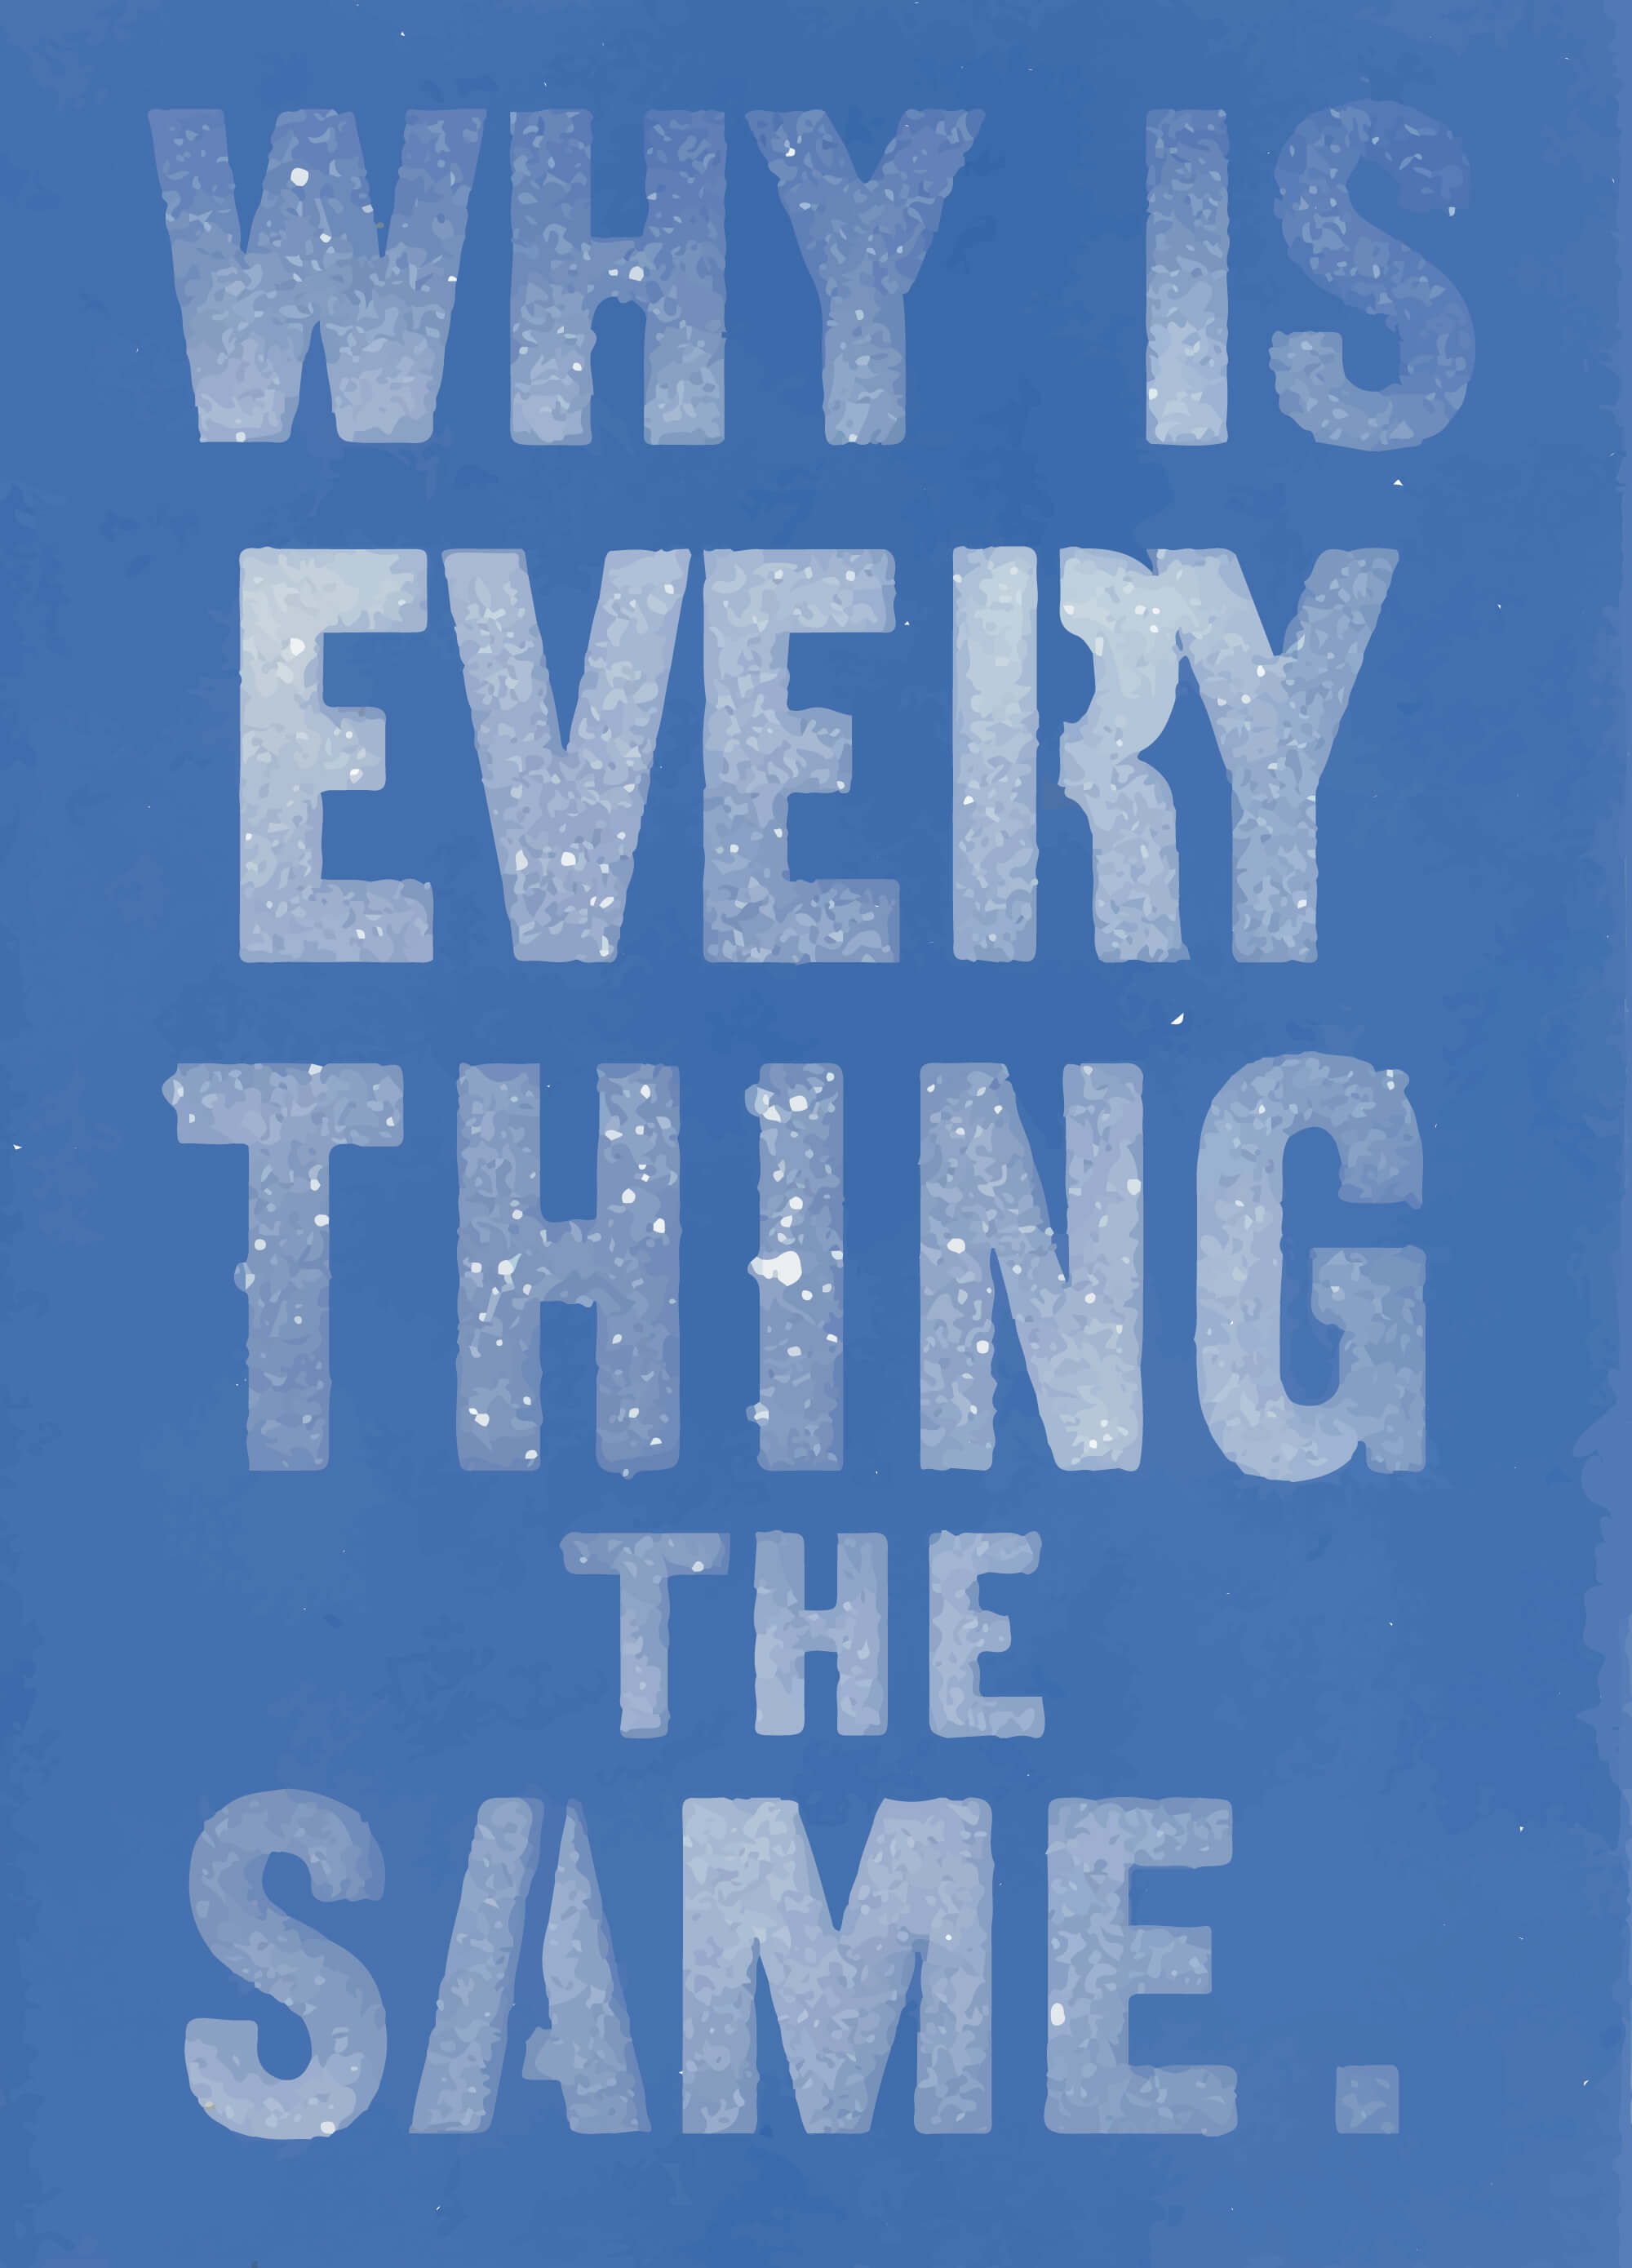 Allen Ruppersberg: Why Is Every Thing The Same. 1991